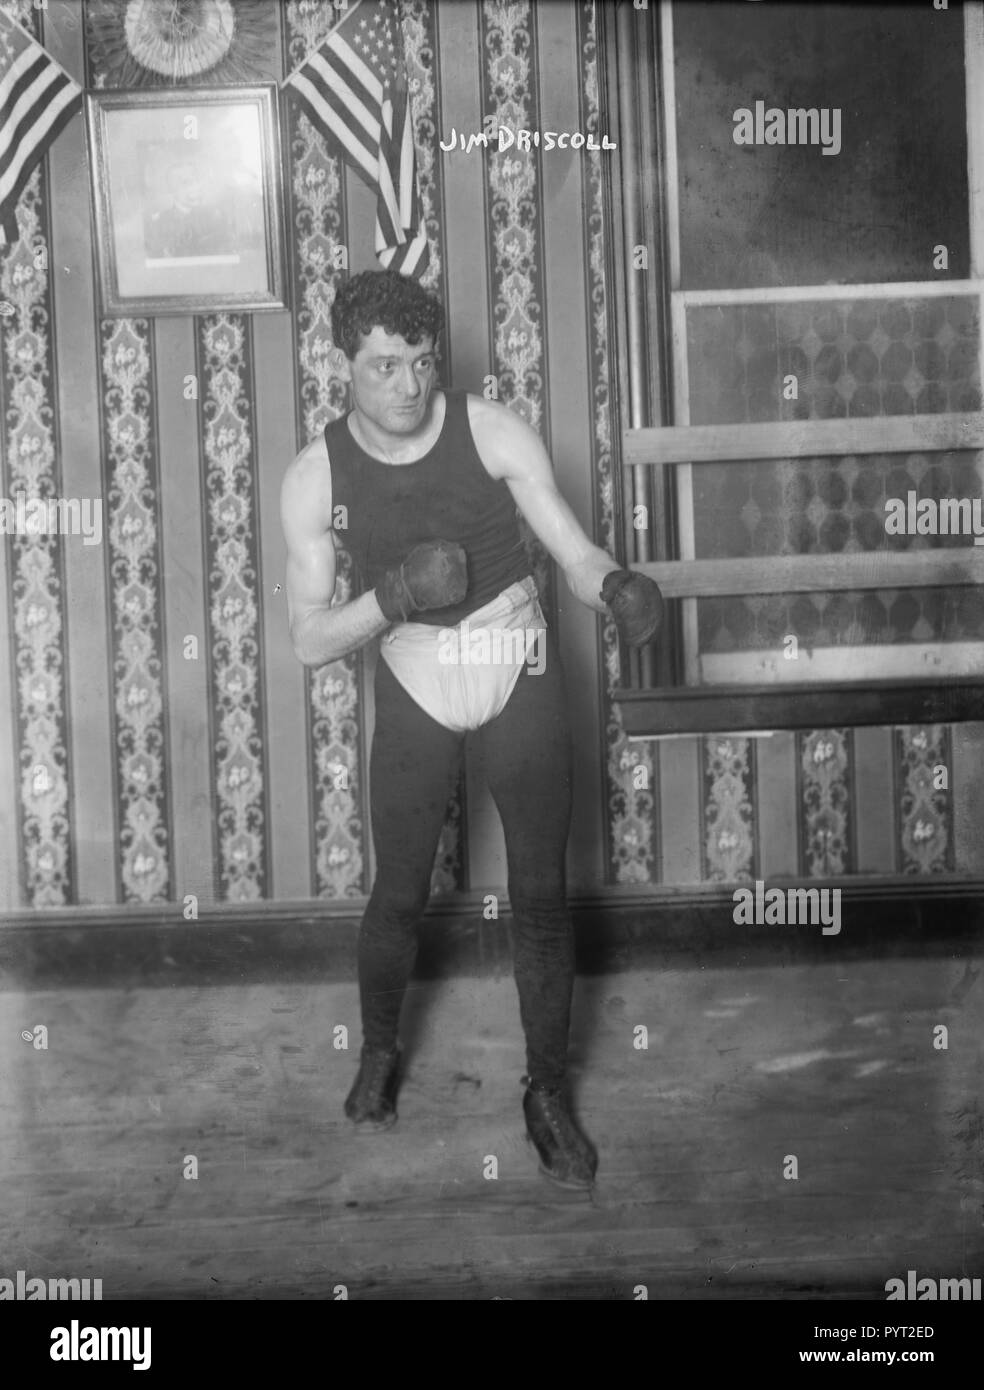 Peerless James Jim Driscoll (1880-1925) Boxer,  British Featherweight Champion born in Cardiff, Wales, UK, while on boxing tour in USA in 1908/1909. - Stock Image